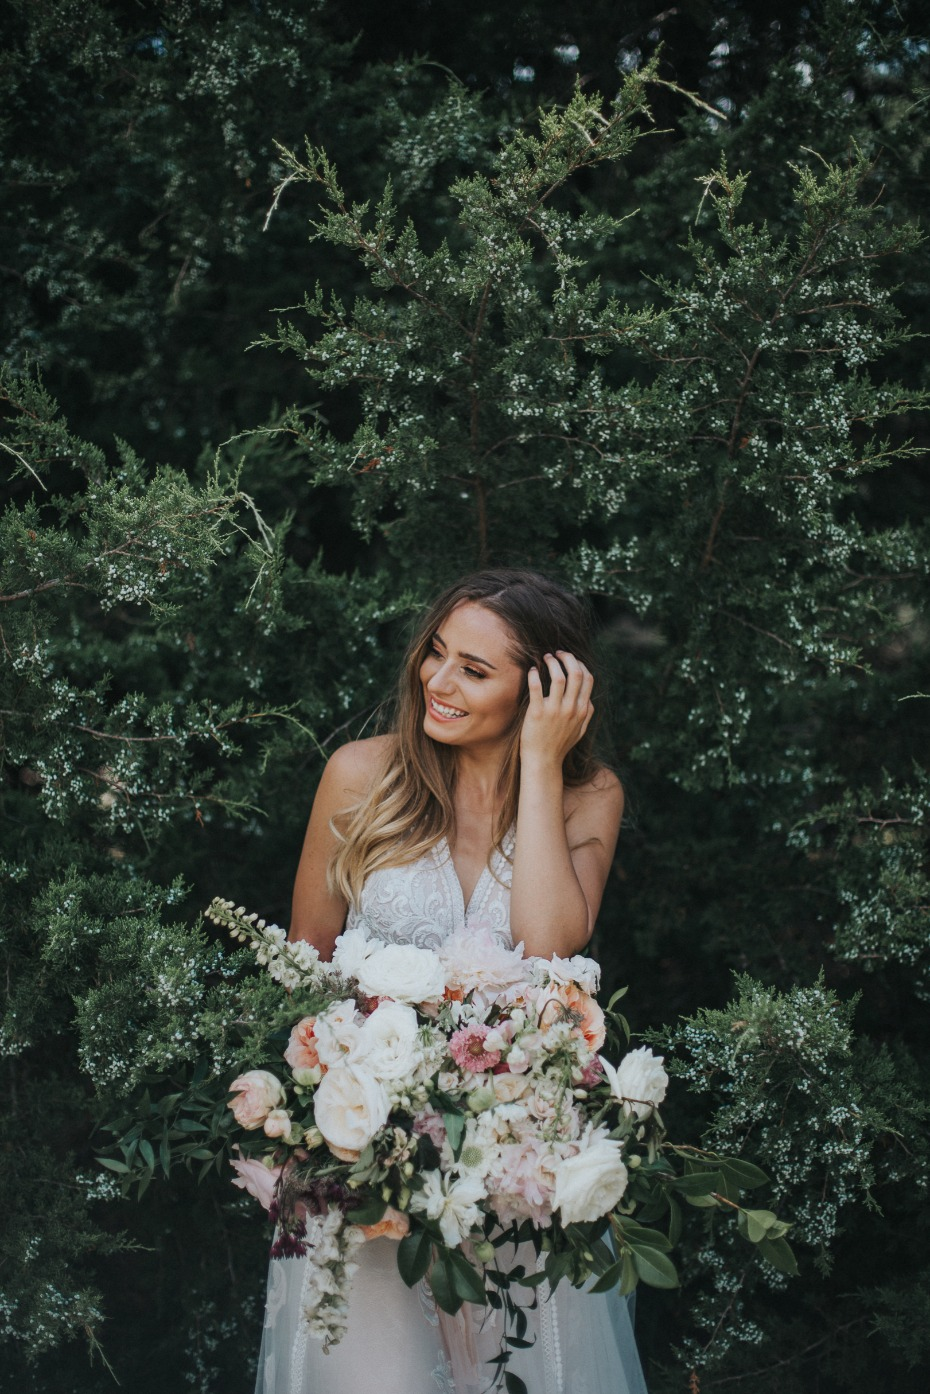 Wild Hill Flowers and Events Bride In Front of Trees with Bouquets